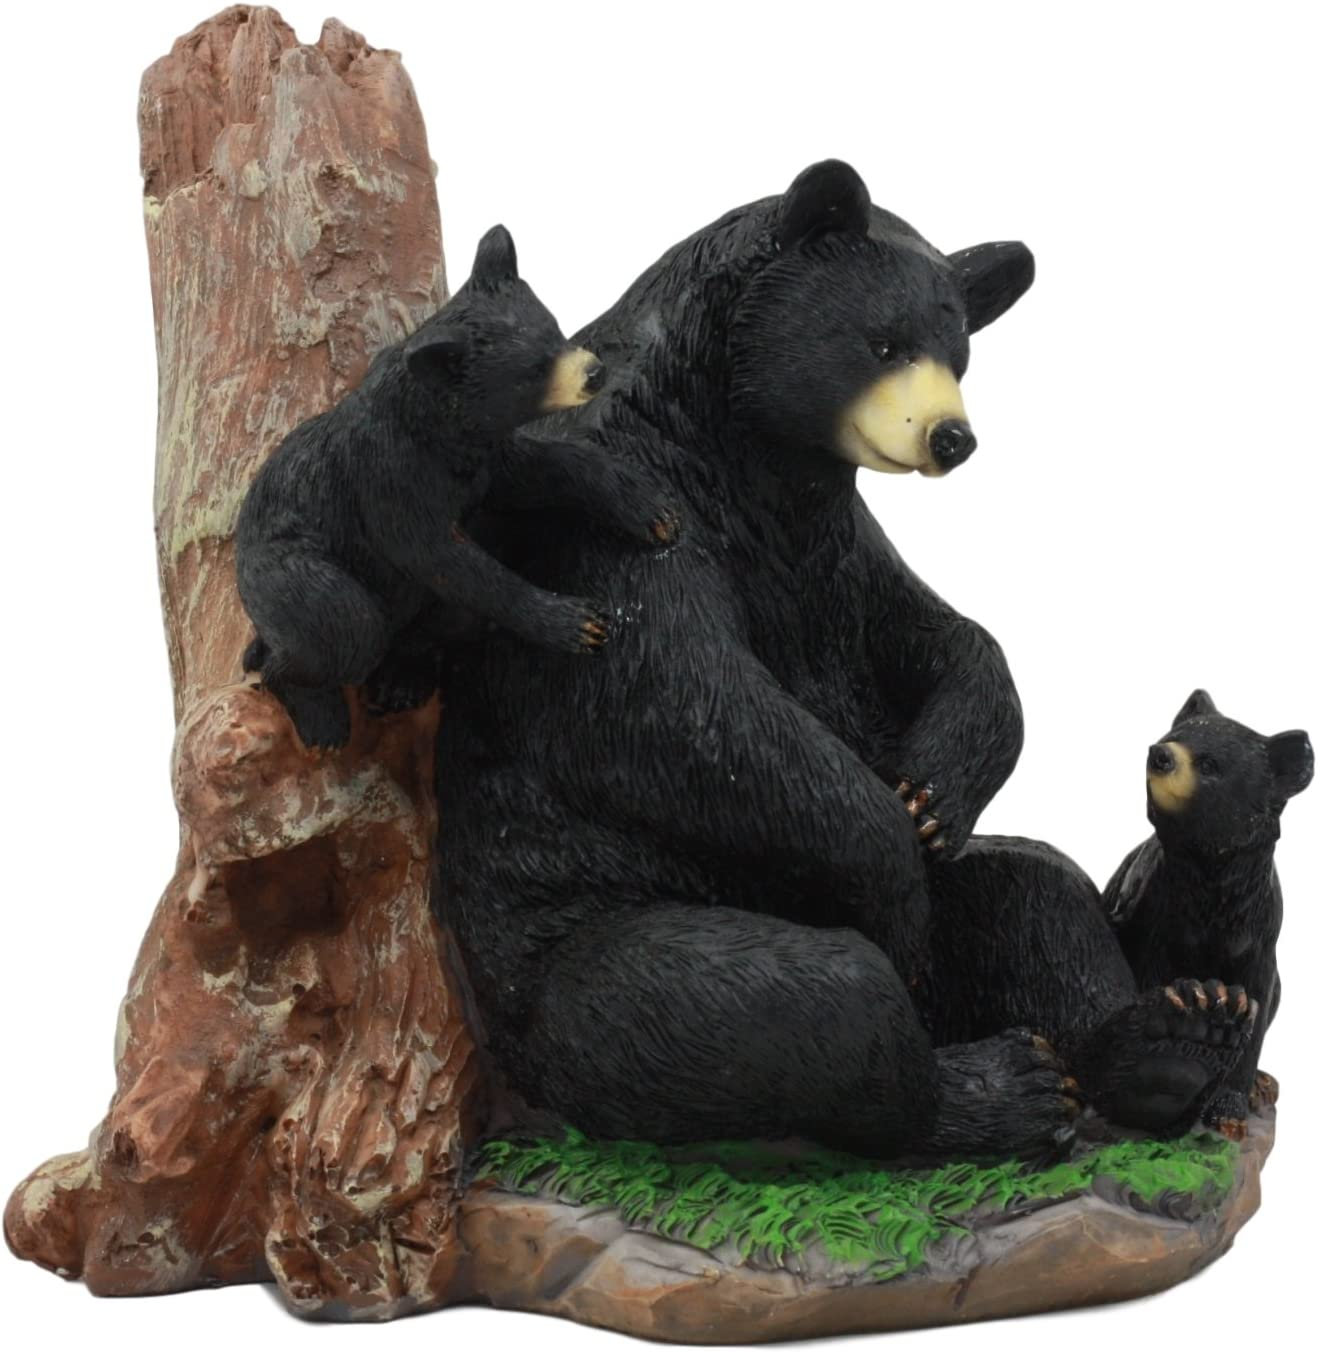 Mother Black Bear With Cubs In Outpost Camping Hammock Statue Wildlife Forest